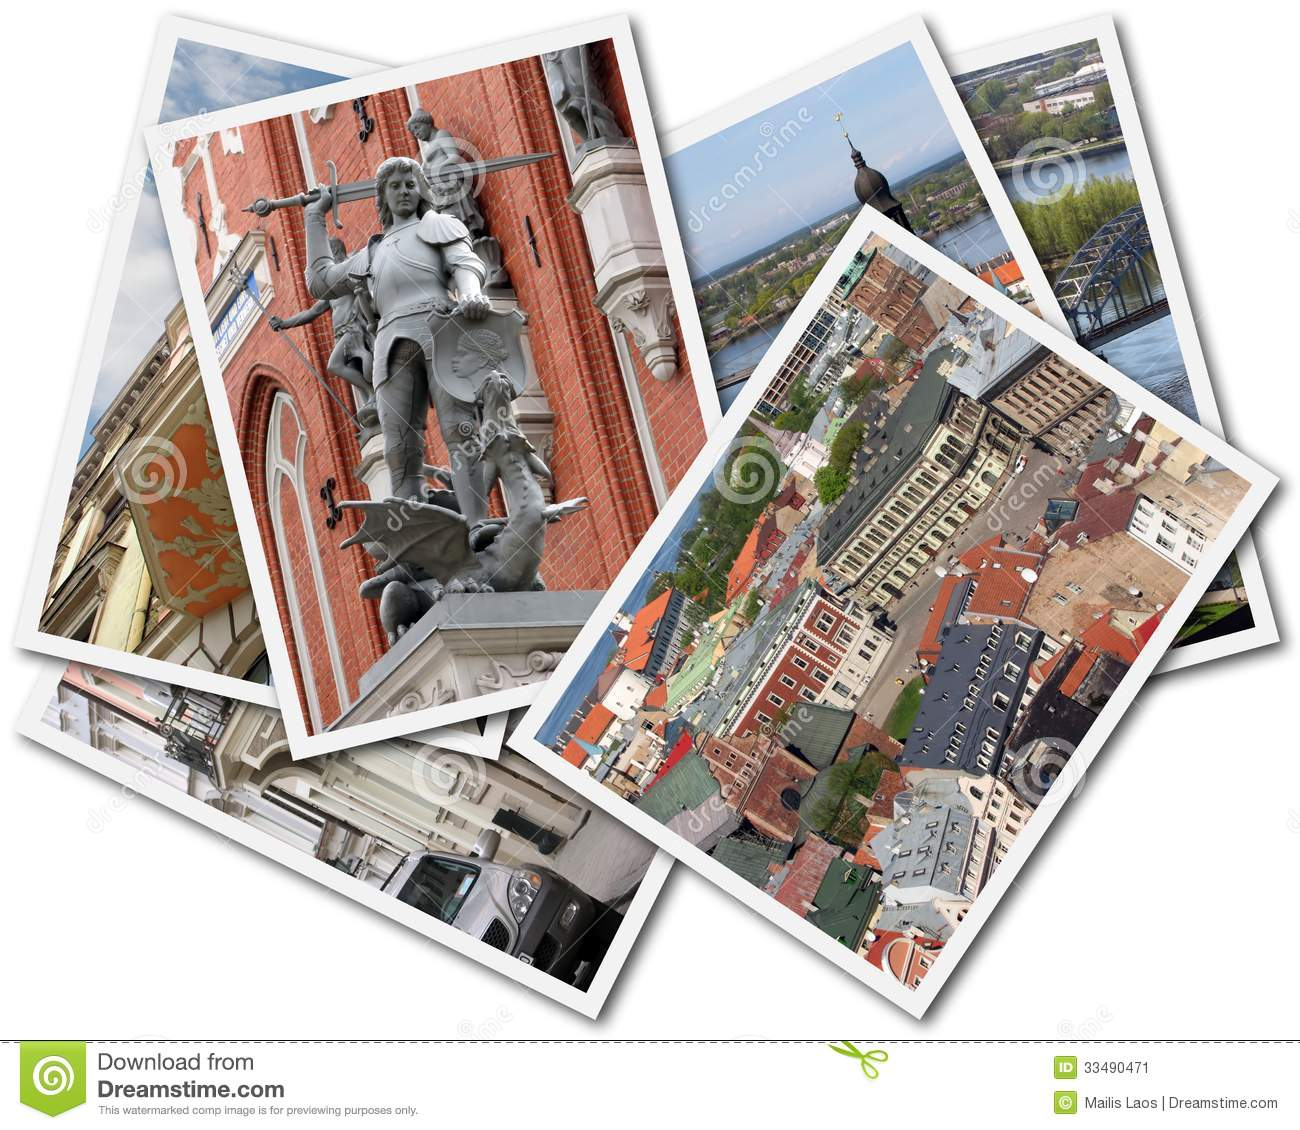 Download Riga Collage stock image. Image of memories, photo, montage - 33490471